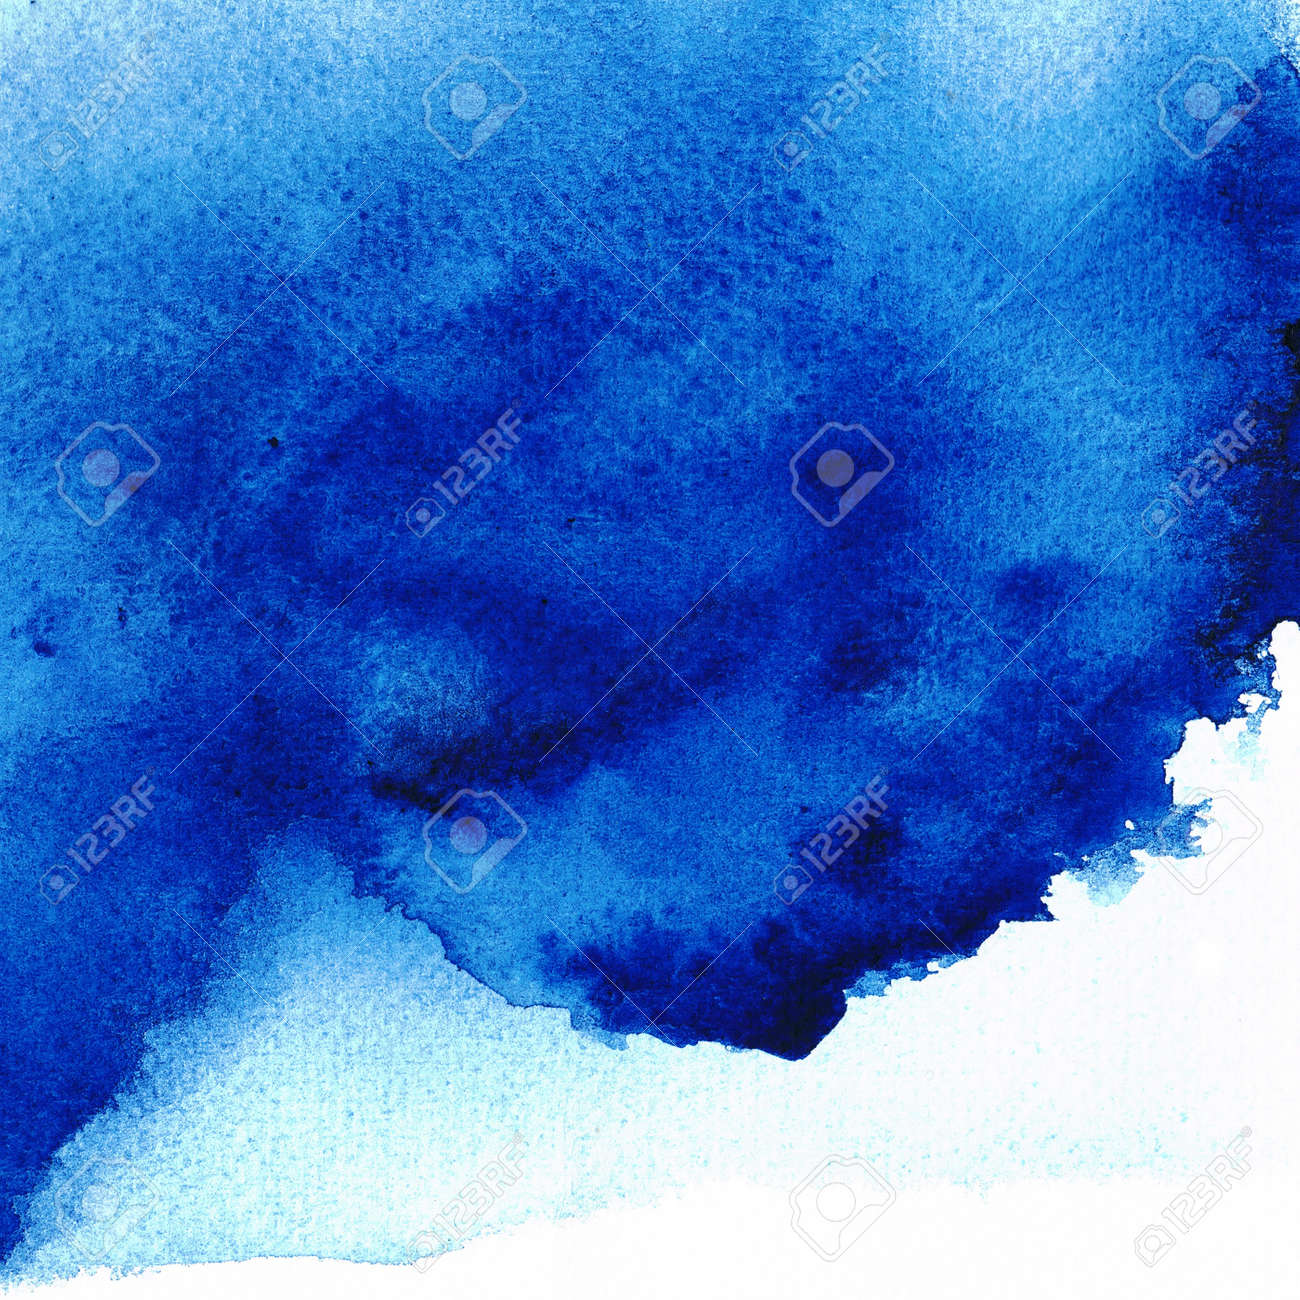 Blue Wet on wet abstract watercolors Stock Photo - 14789799